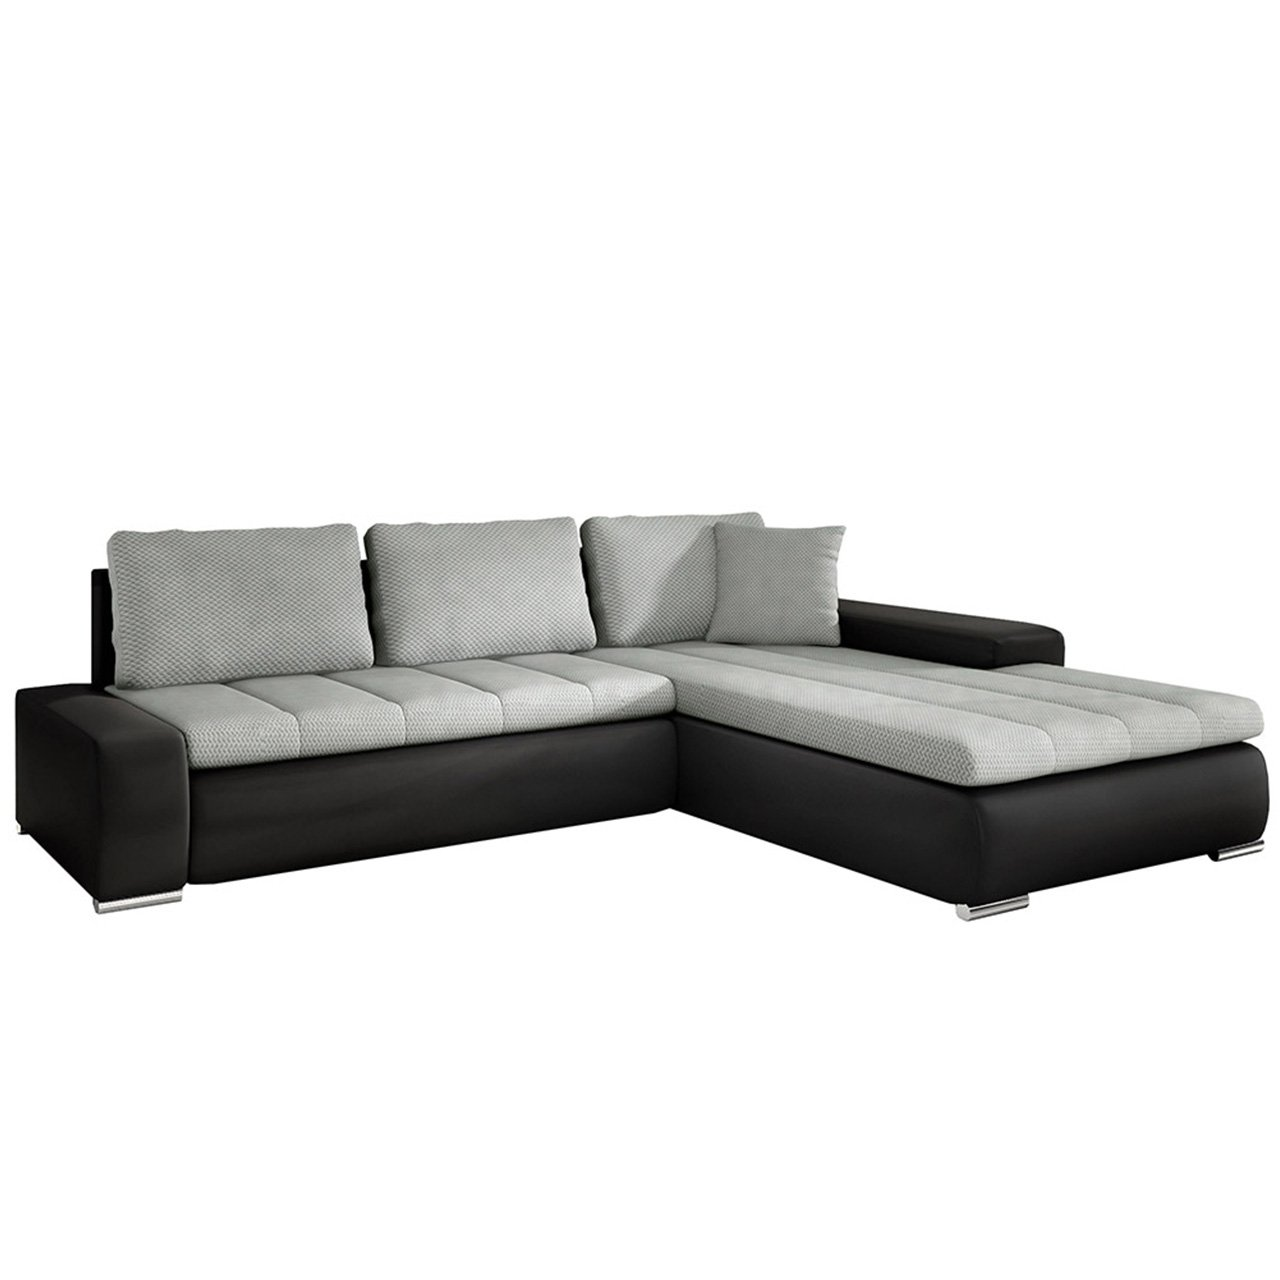 eckcouch ecksofa orkan smart elegante sofa mit schlaffunktion und bettfunktion bettkasten. Black Bedroom Furniture Sets. Home Design Ideas